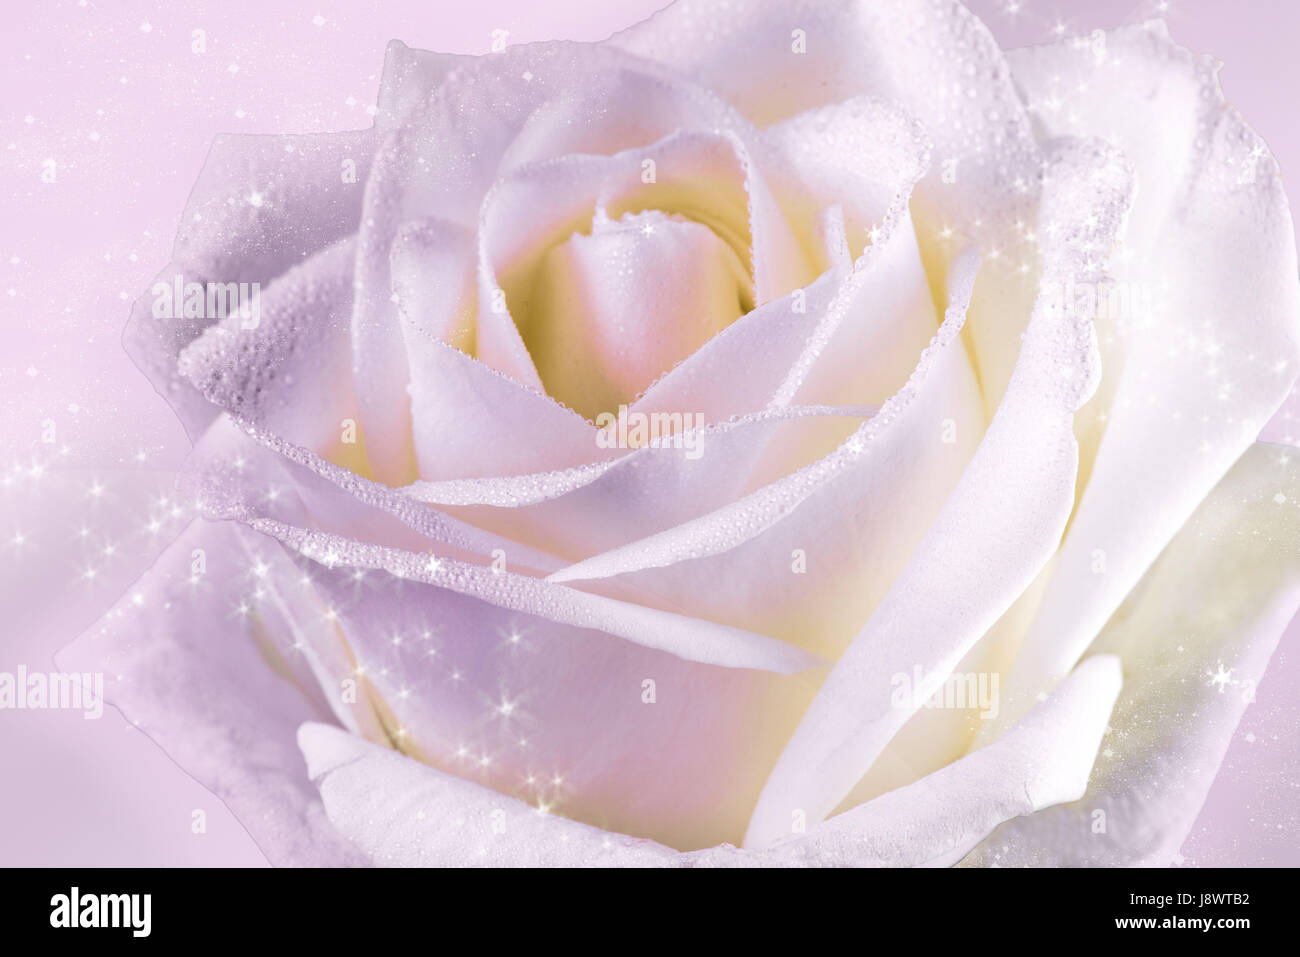 Delicate white rose with shiny stars - Stock Image